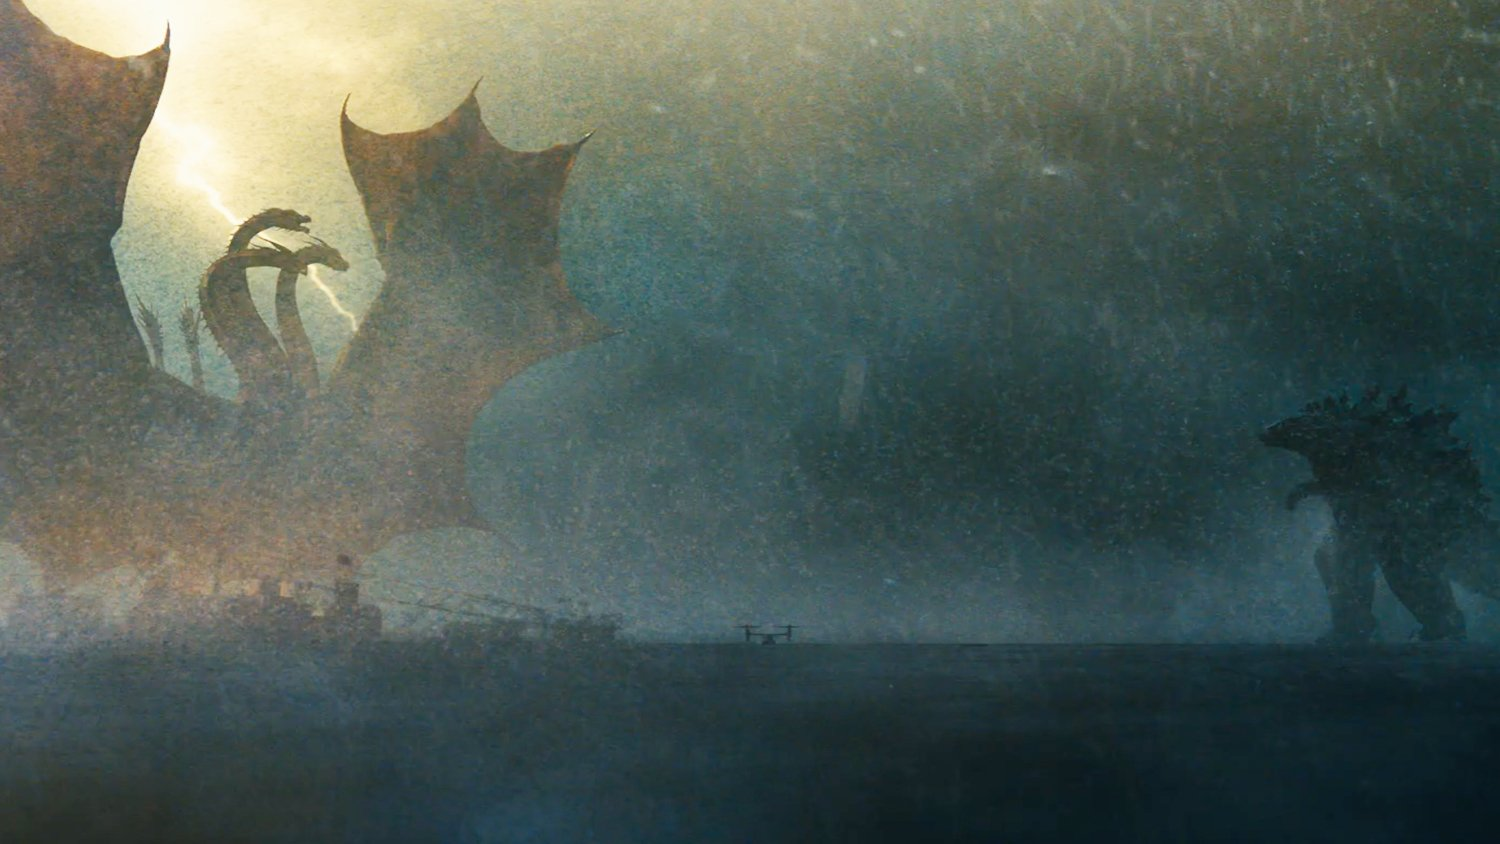 Godzilla And King Ghidorah Prepare For Battle On New Japanese